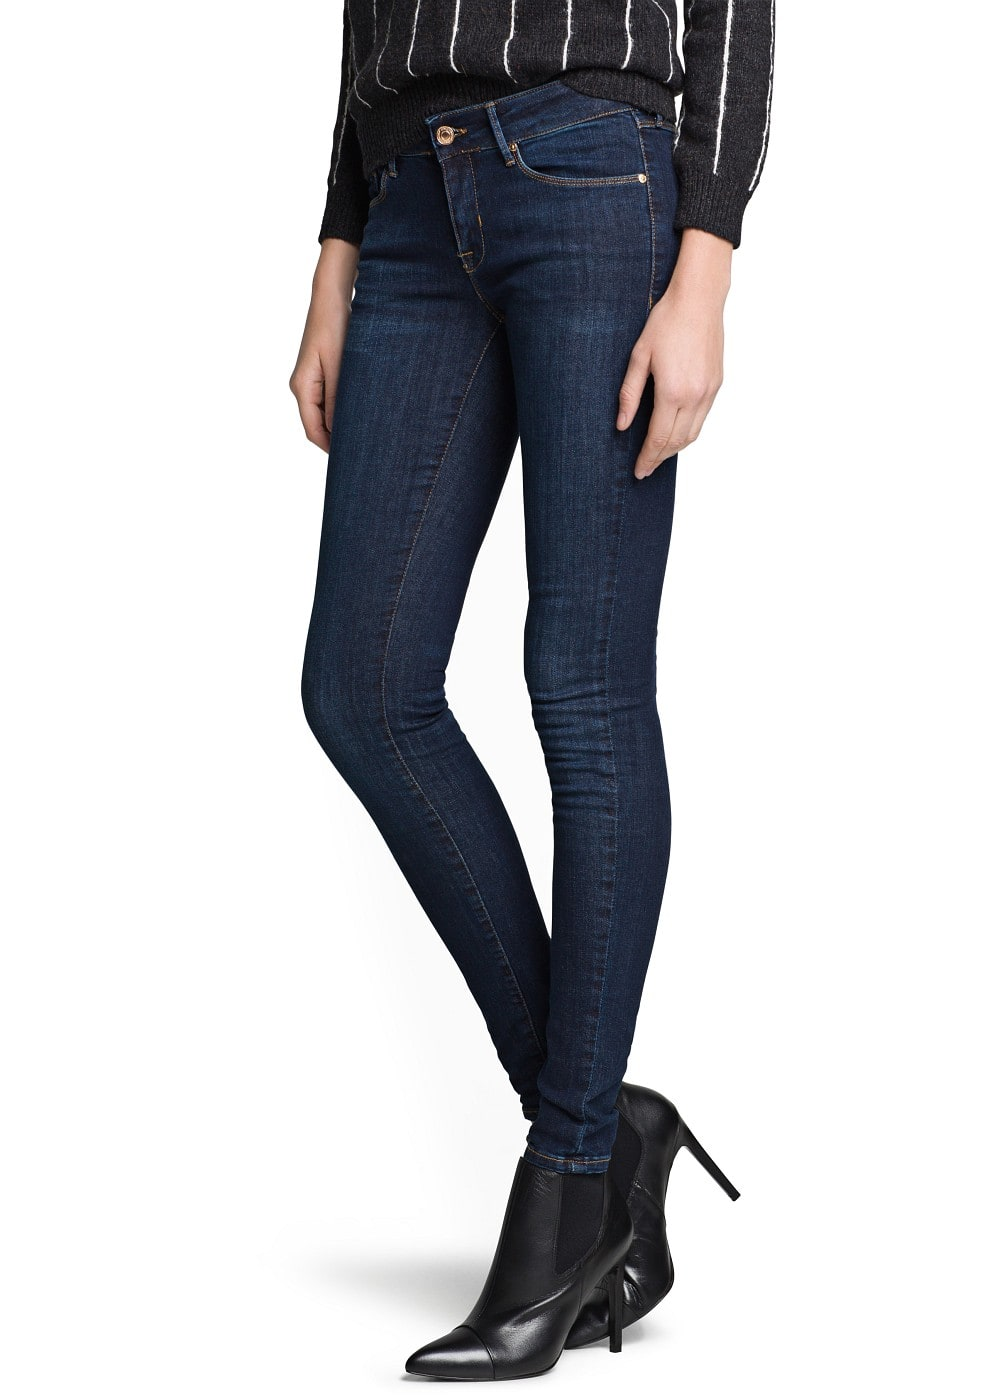 Super slim-fit dark Olivia jeans